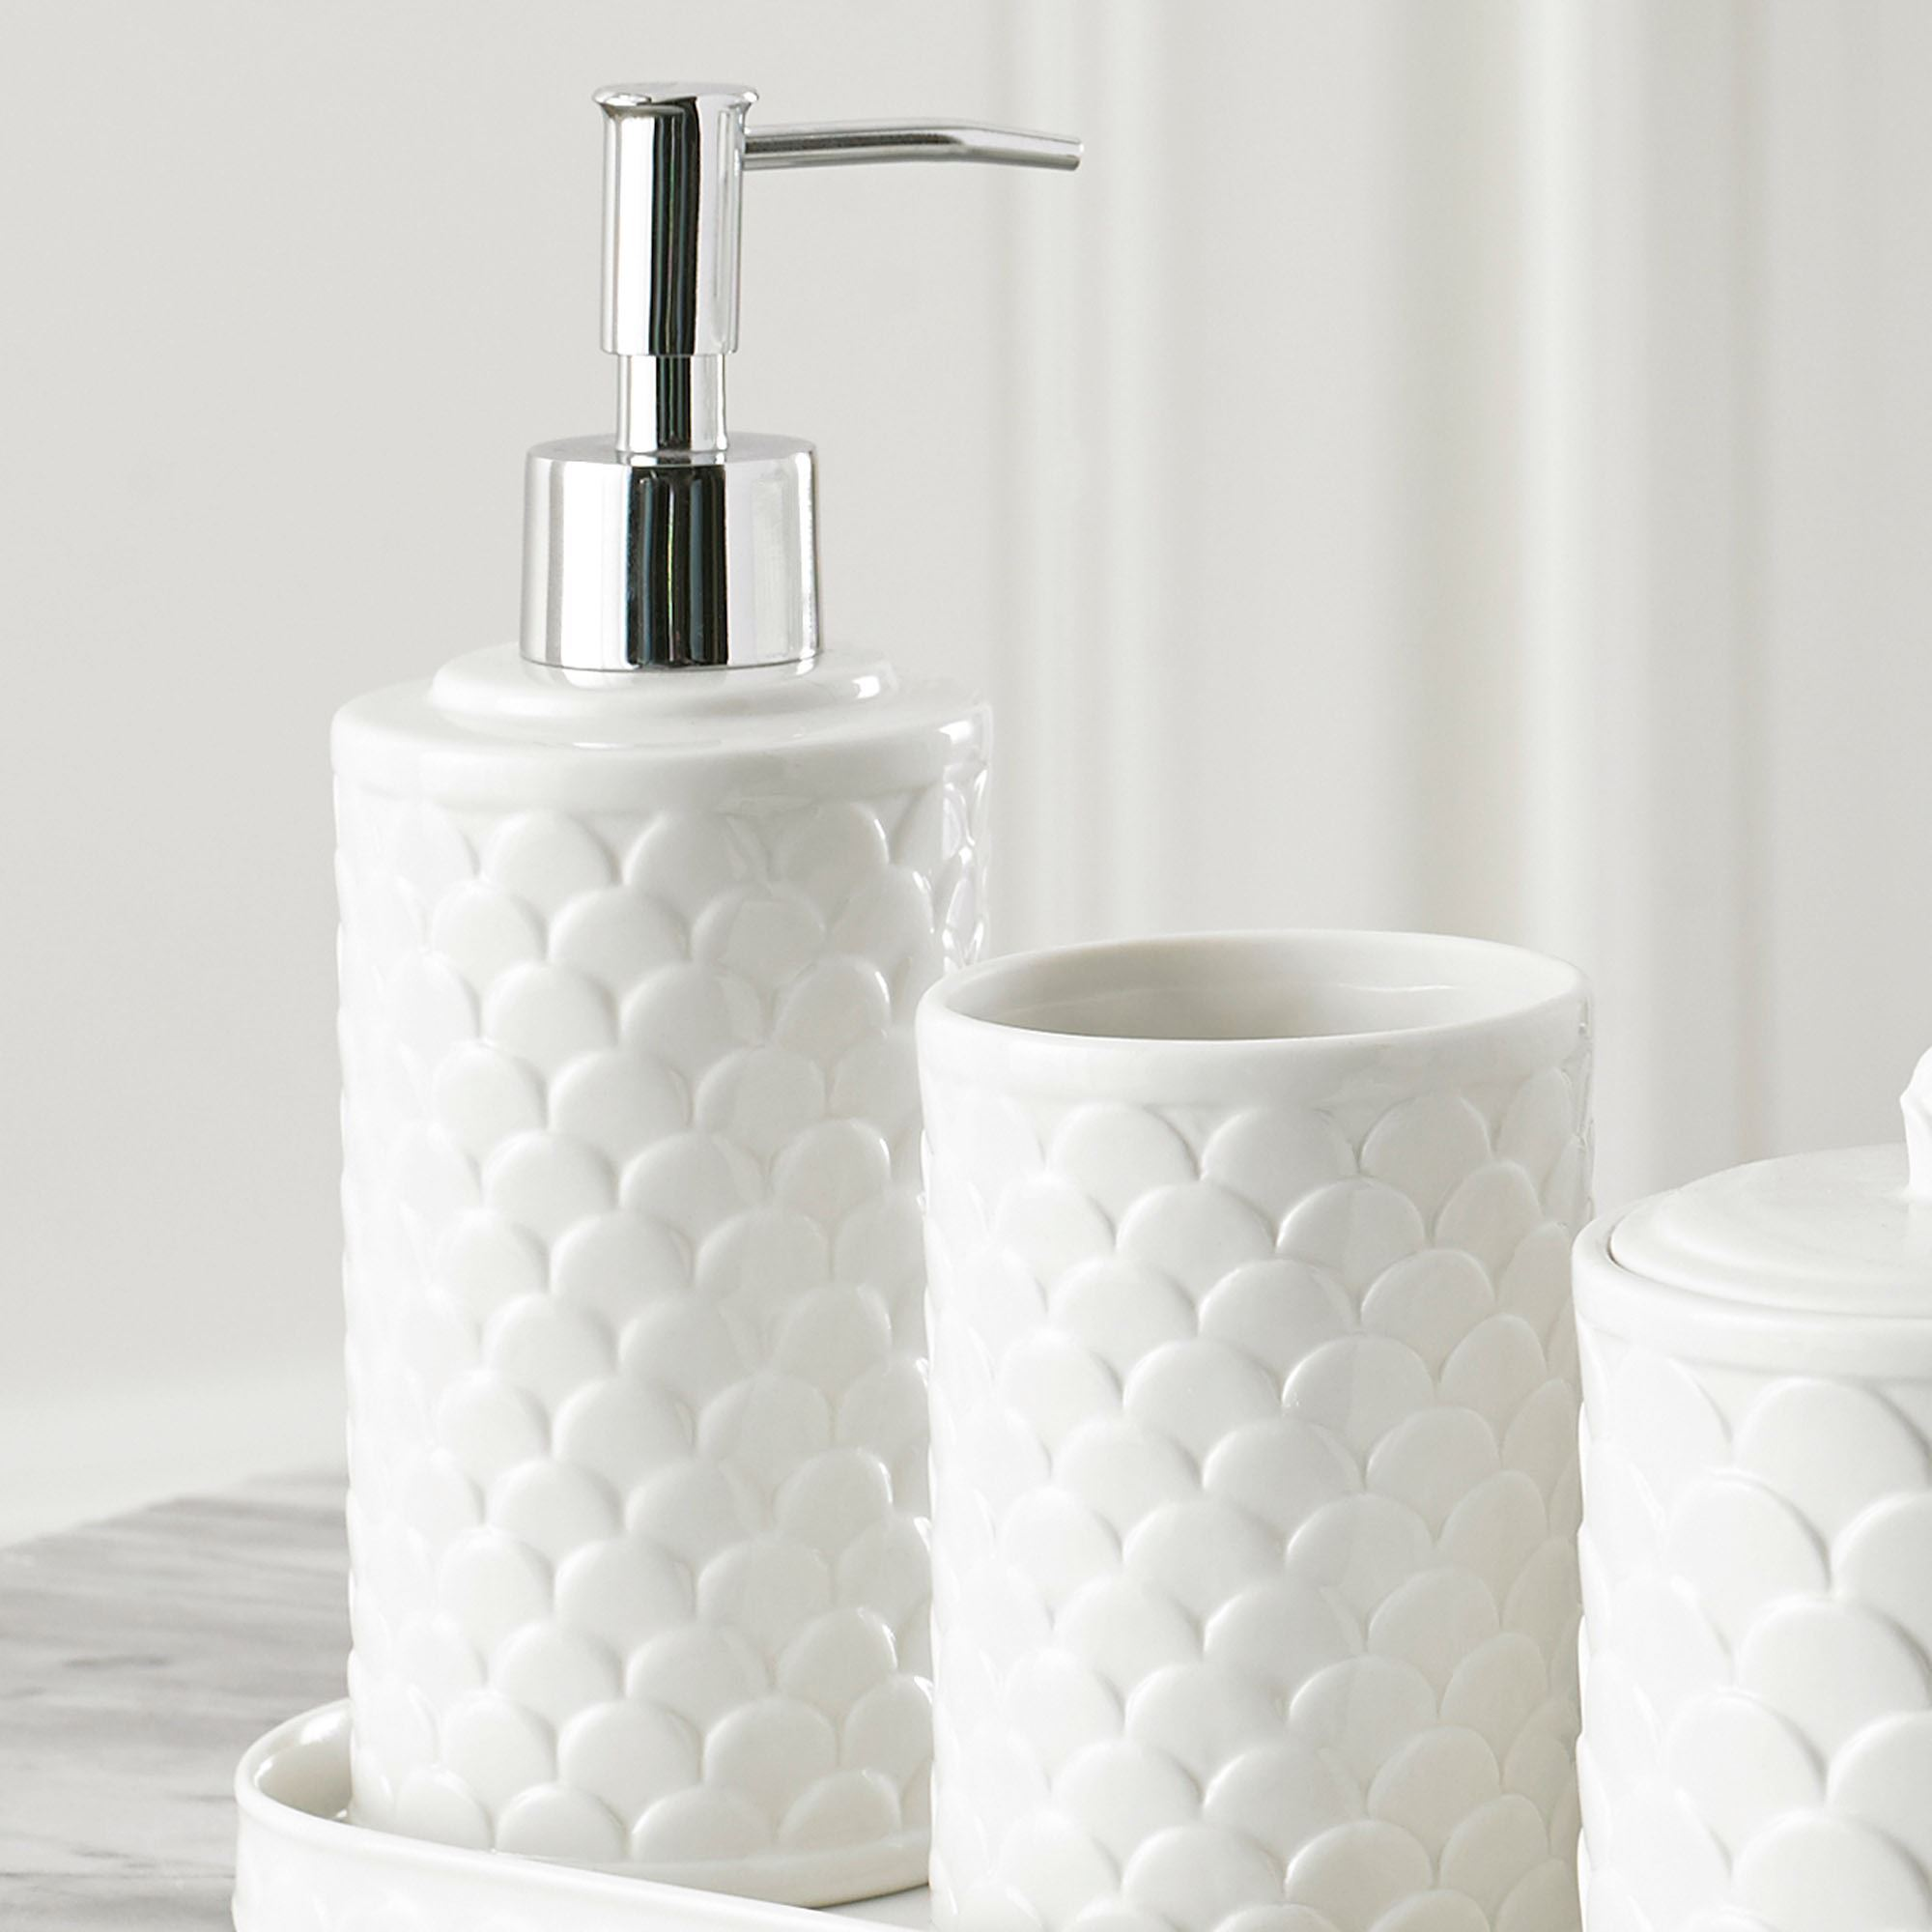 White Bath Accessories - unique wastebasket tissue holder luxury ...